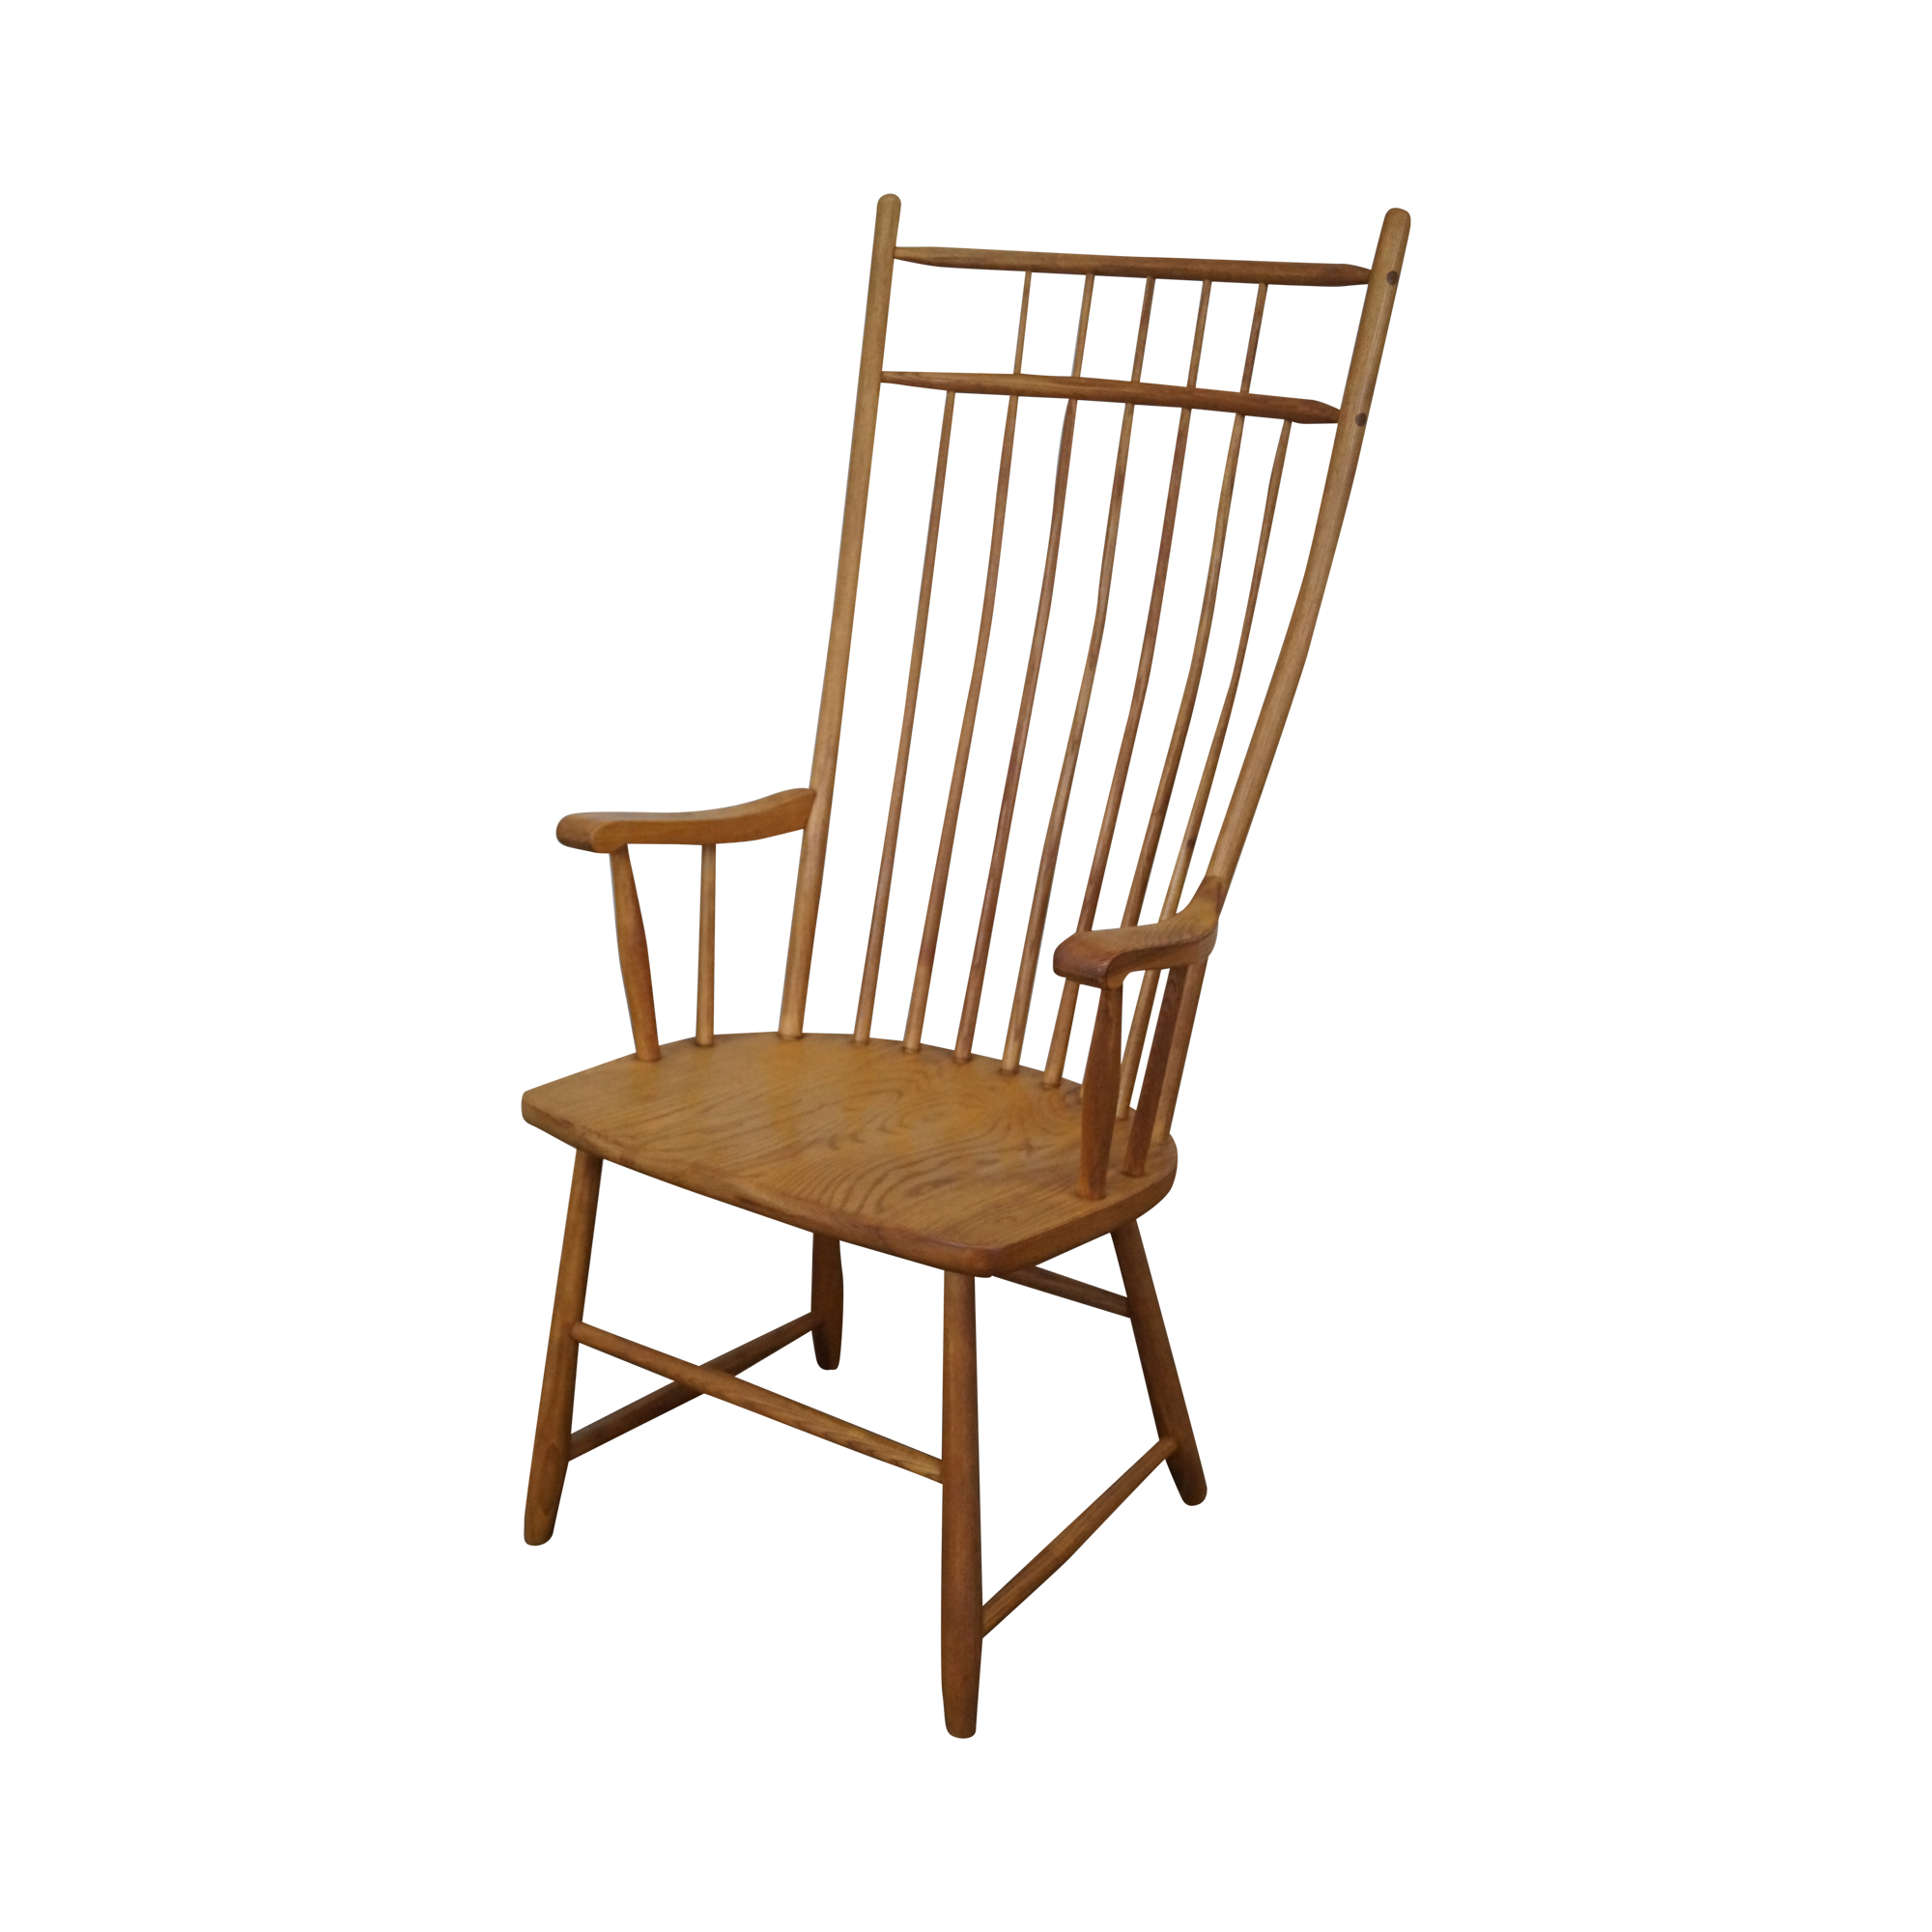 S Bent Bros Colonial Windsor Style Oak Arm Chair Chairish